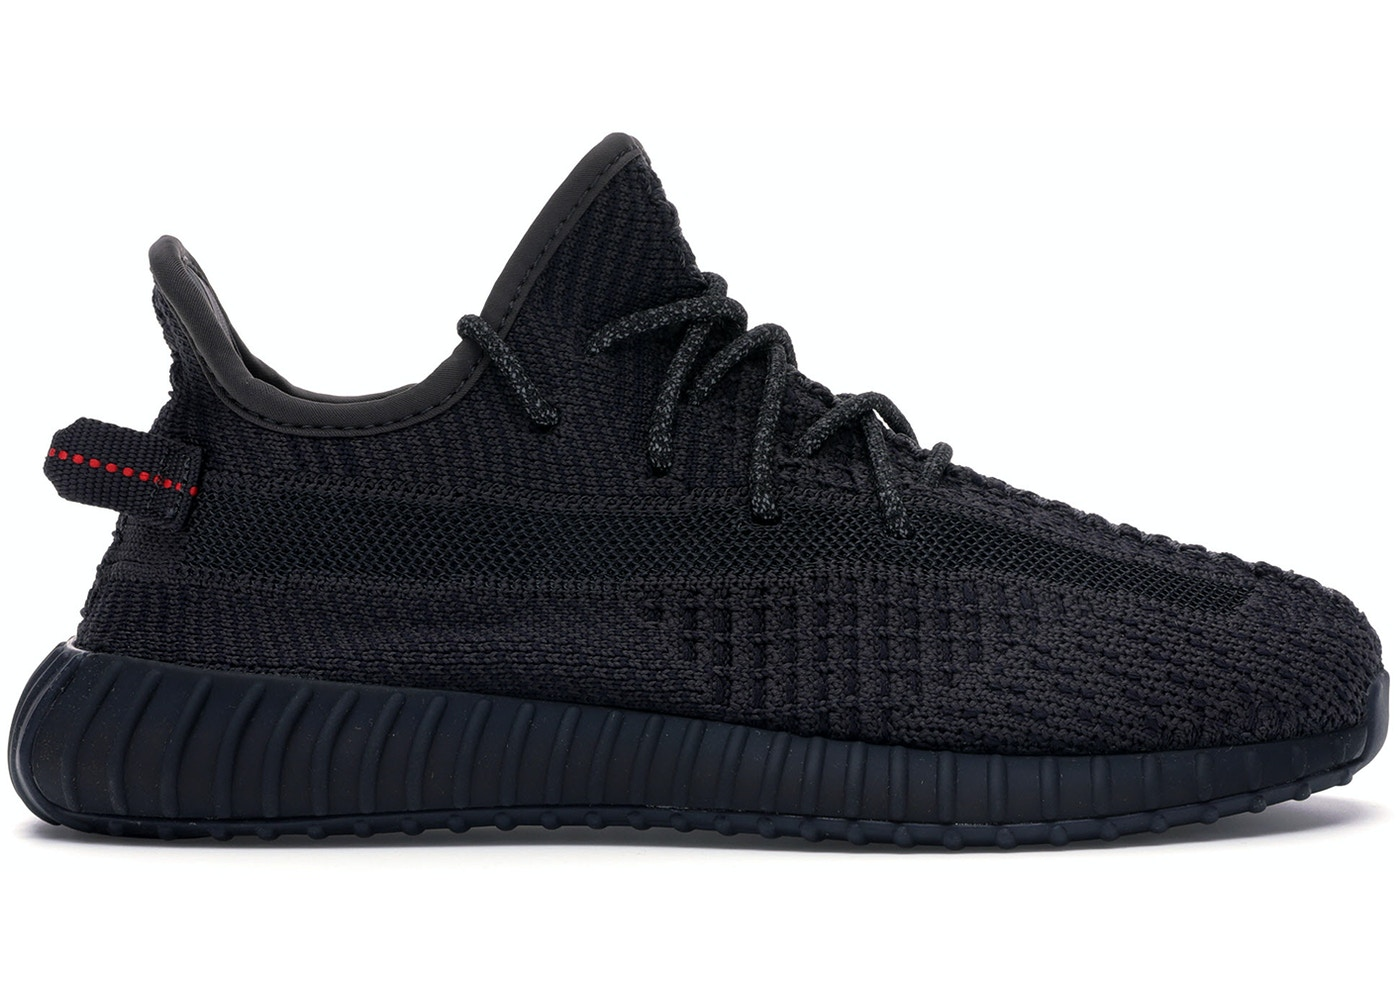 timeless design a1e77 916df adidas Yeezy Boost 350 V2 Black (Kids) (Non-Reflective)